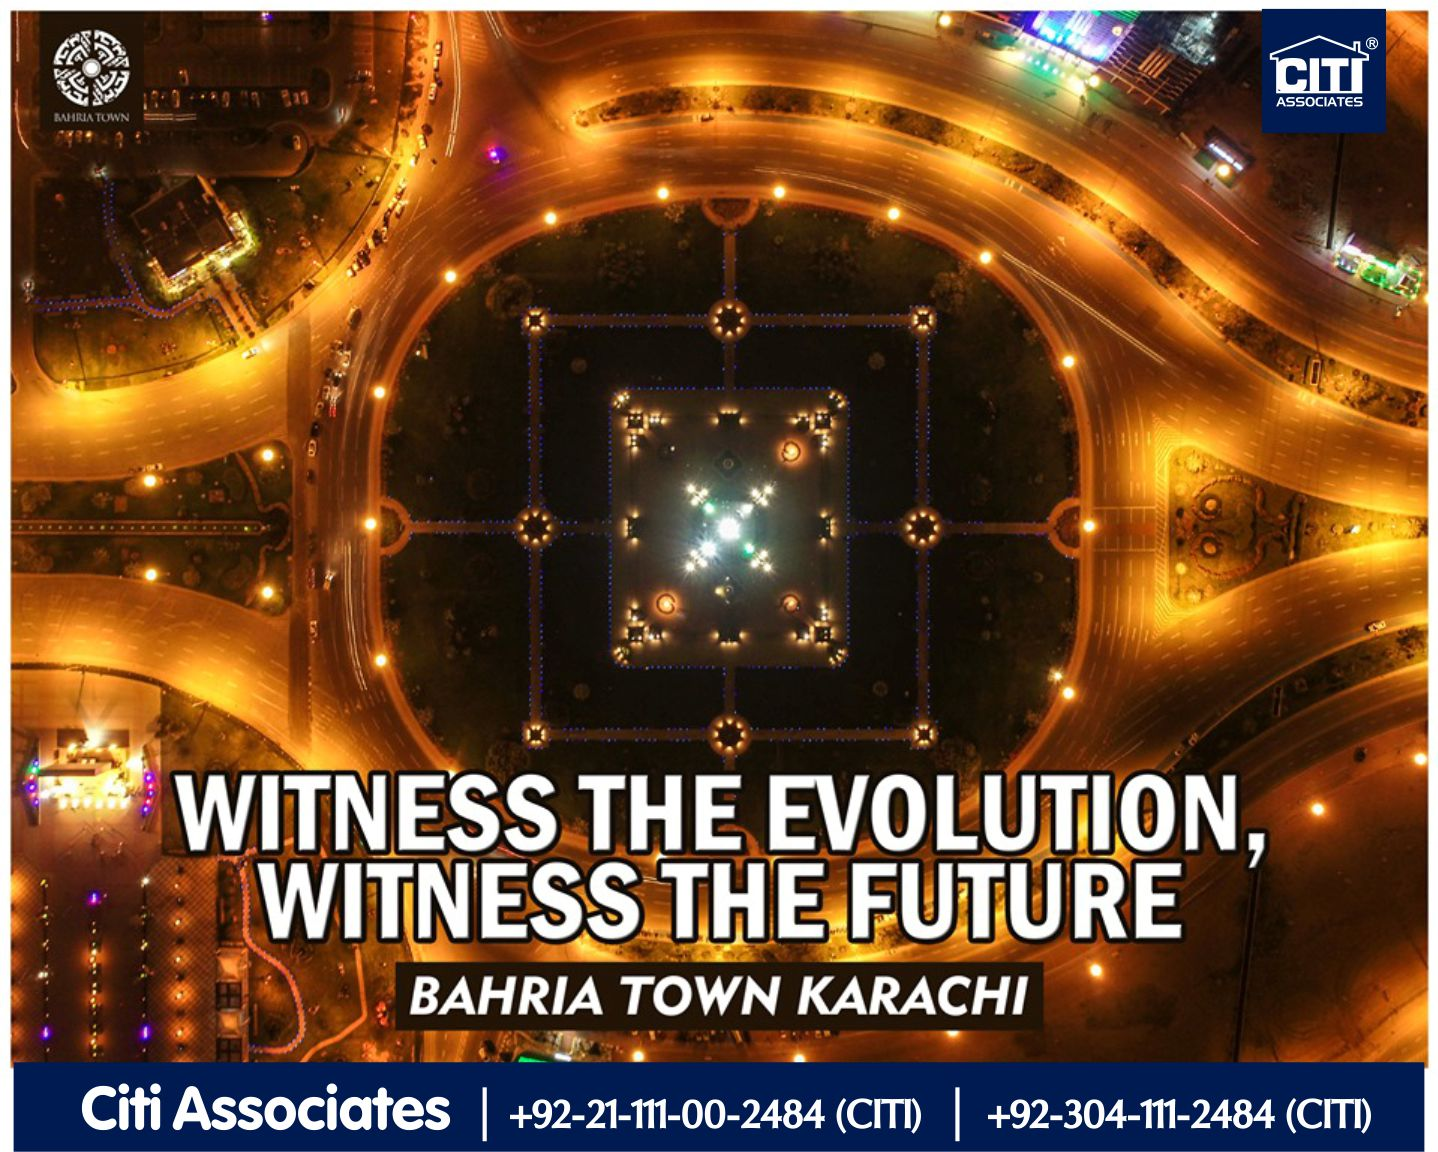 Witness the Evolution. Witness the Future | Bahria Town Karachi